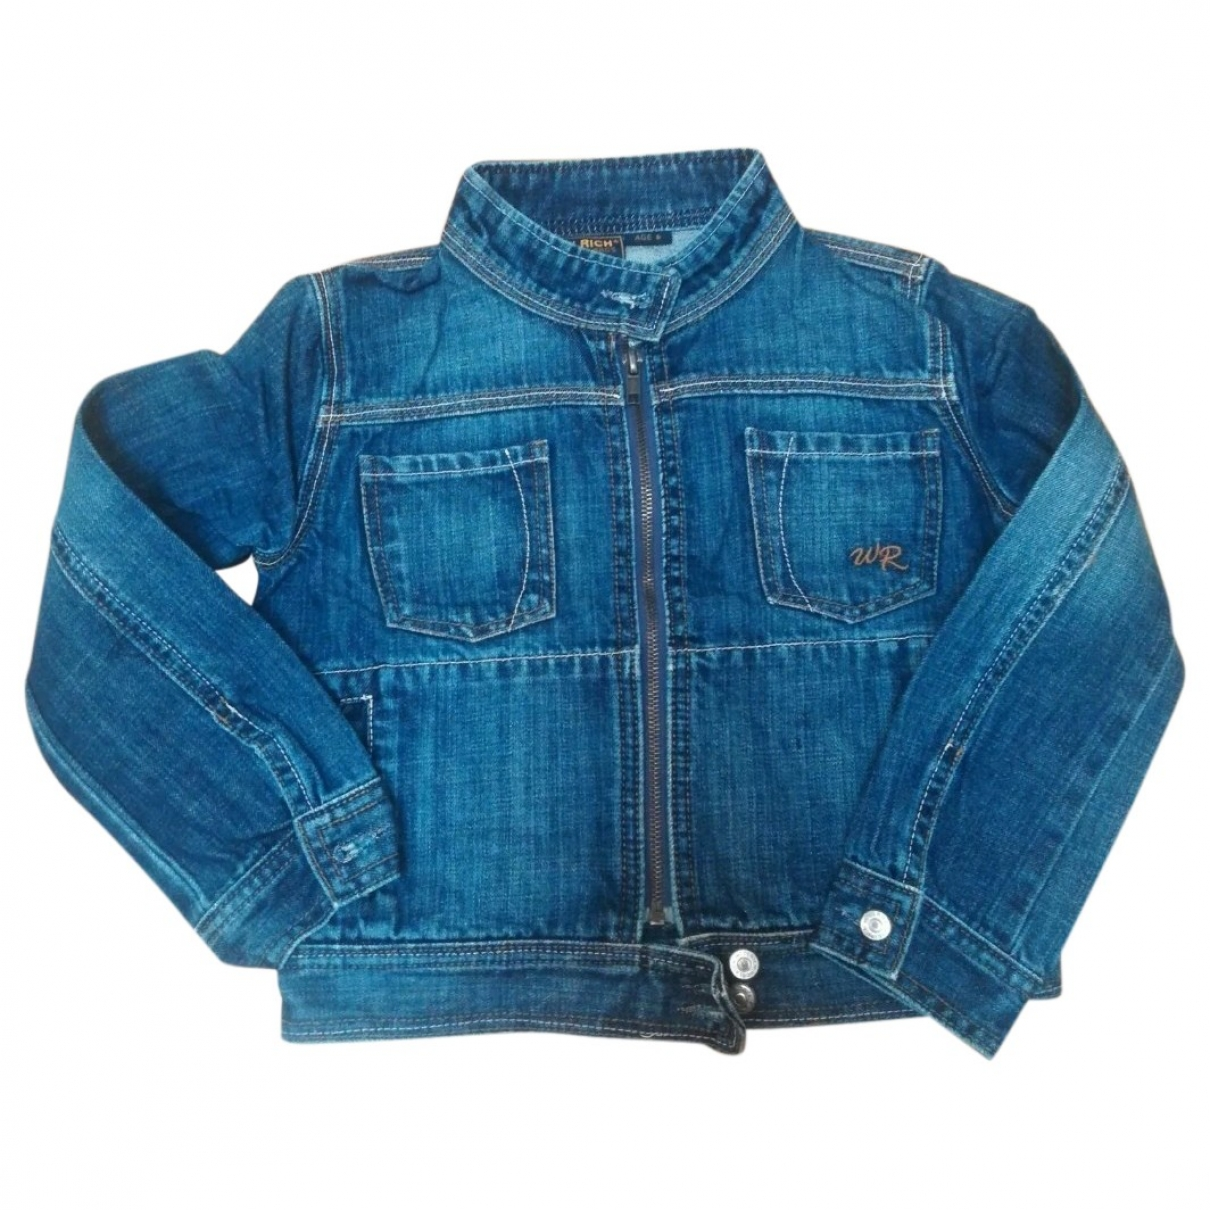 Woolrich \N Blue Denim - Jeans jacket & coat for Kids 6 years - up to 114cm FR